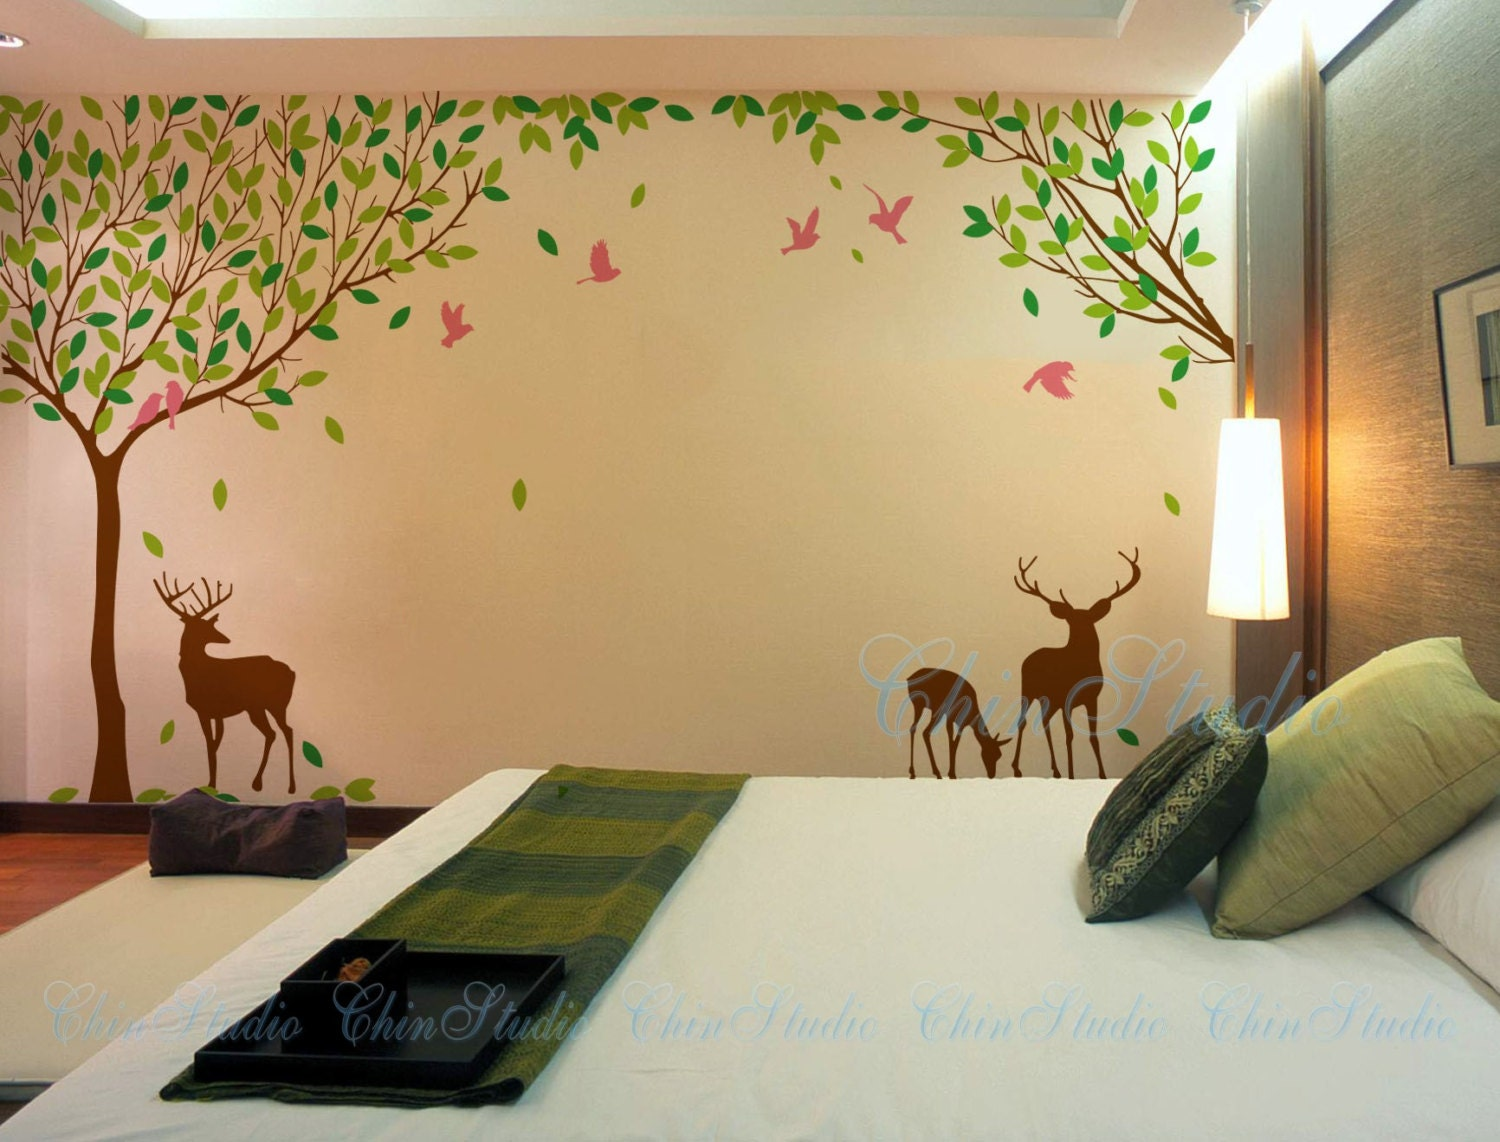 Enchanting Decorative Wall Stickers Nature Component - Wall Art ...